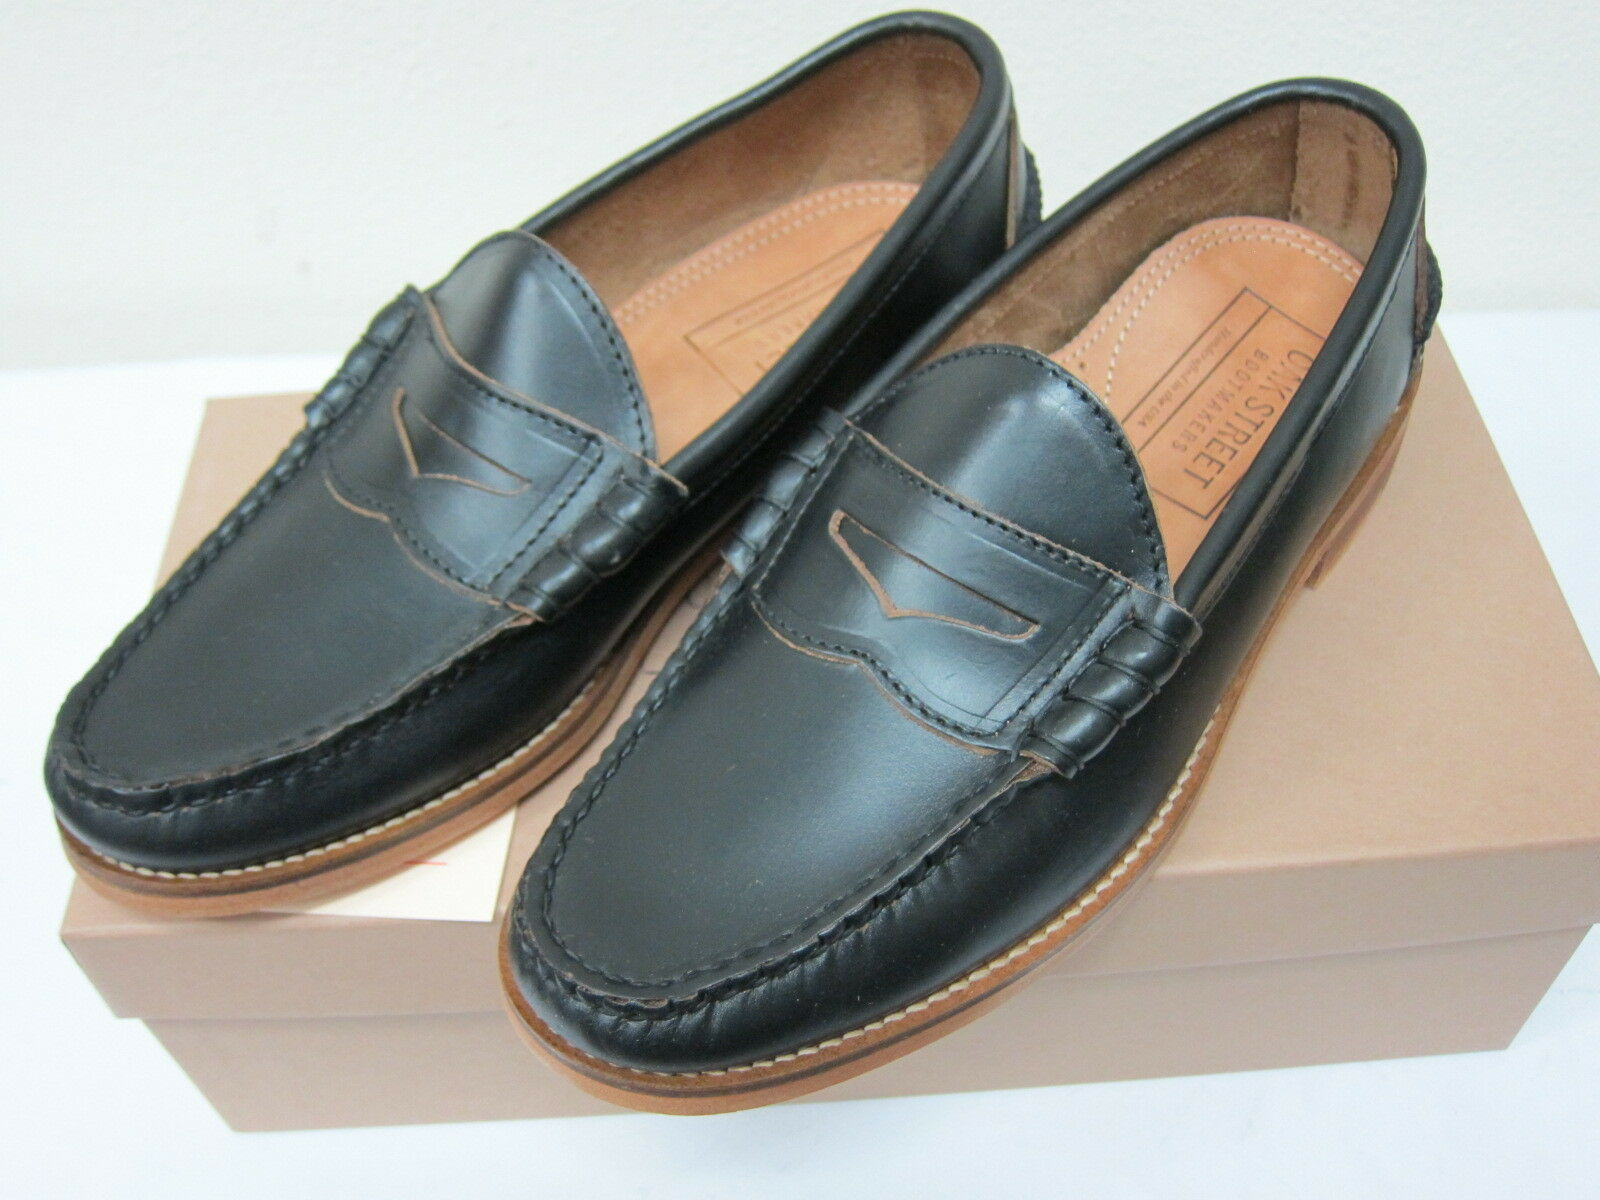 Oak Street stivalimakers Beefroll Penny Loafer nero Horween Leather Made in USA